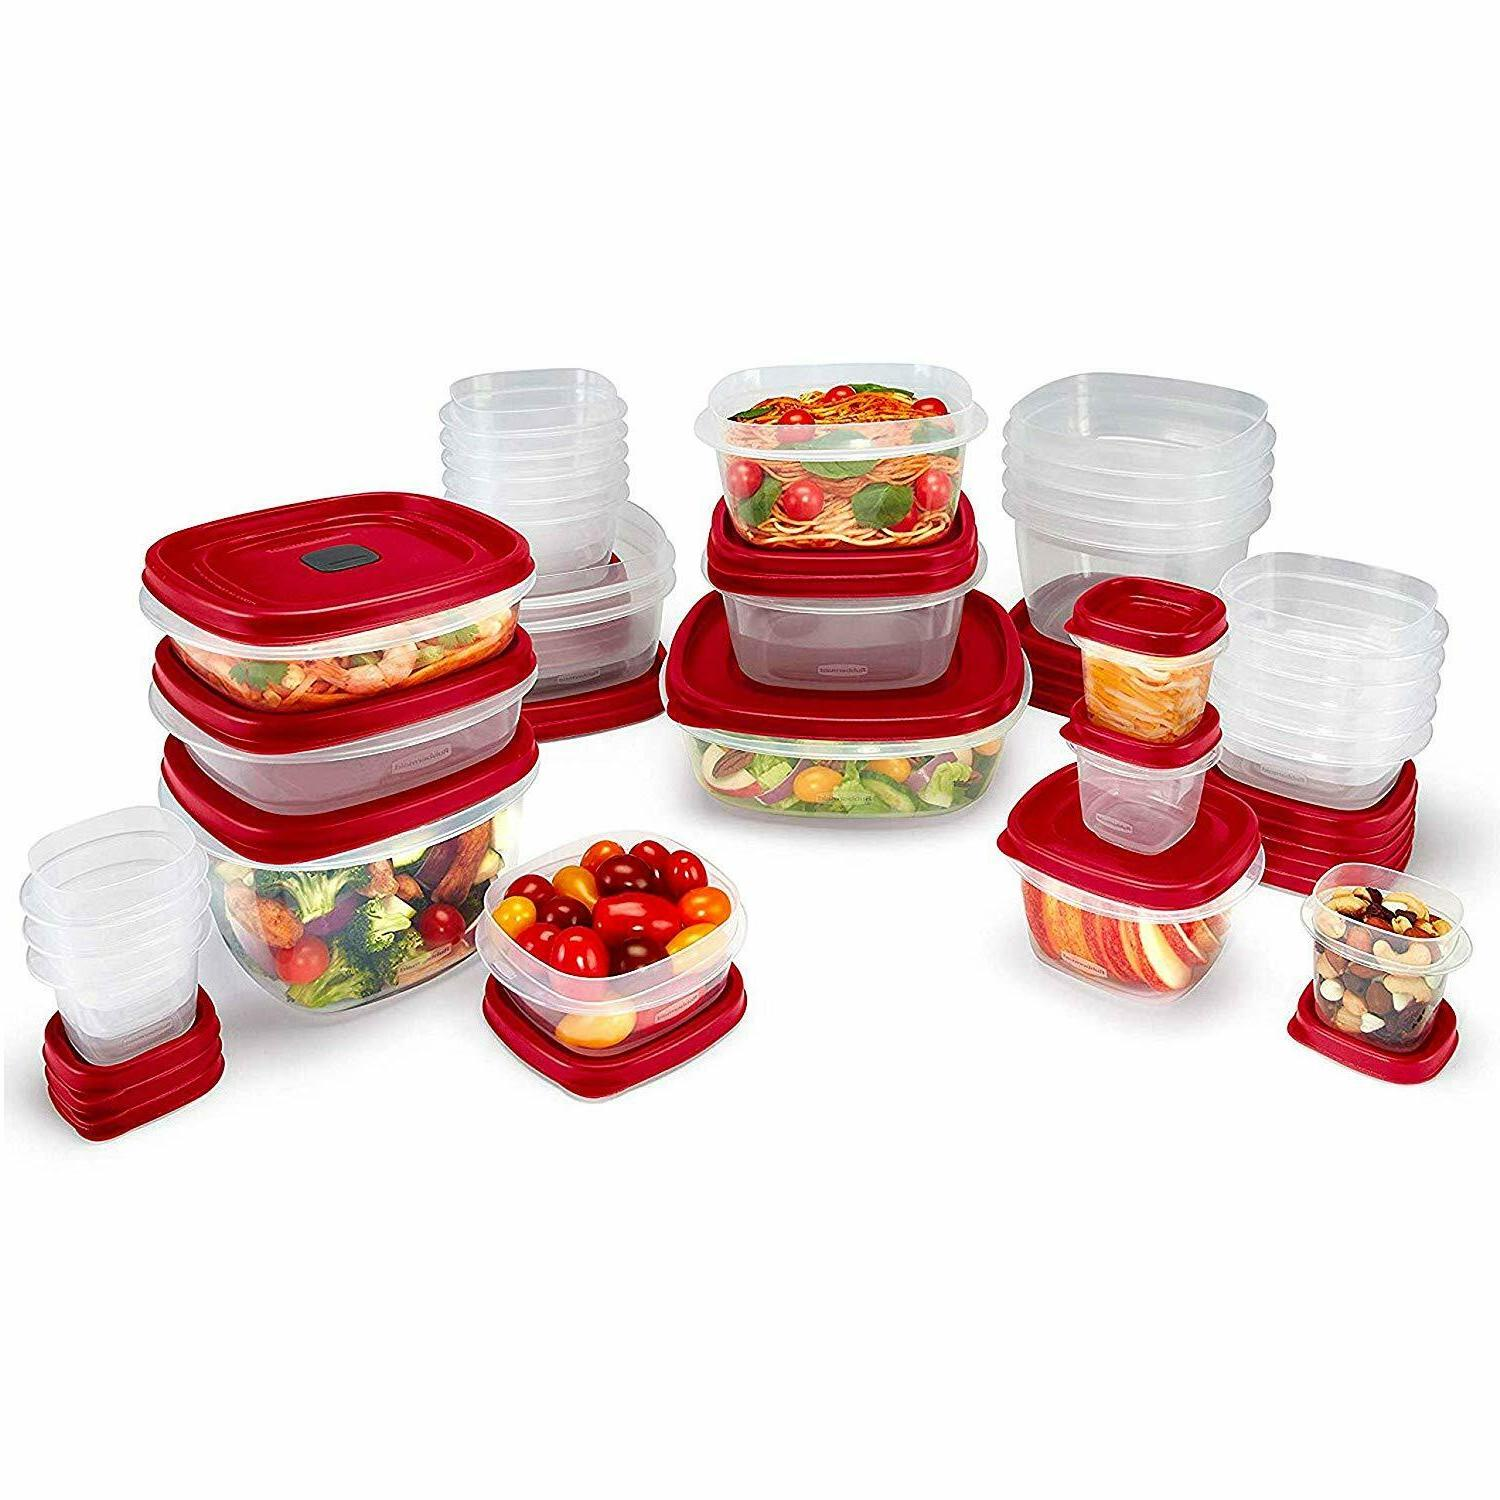 Rubbermaid Vented Set of